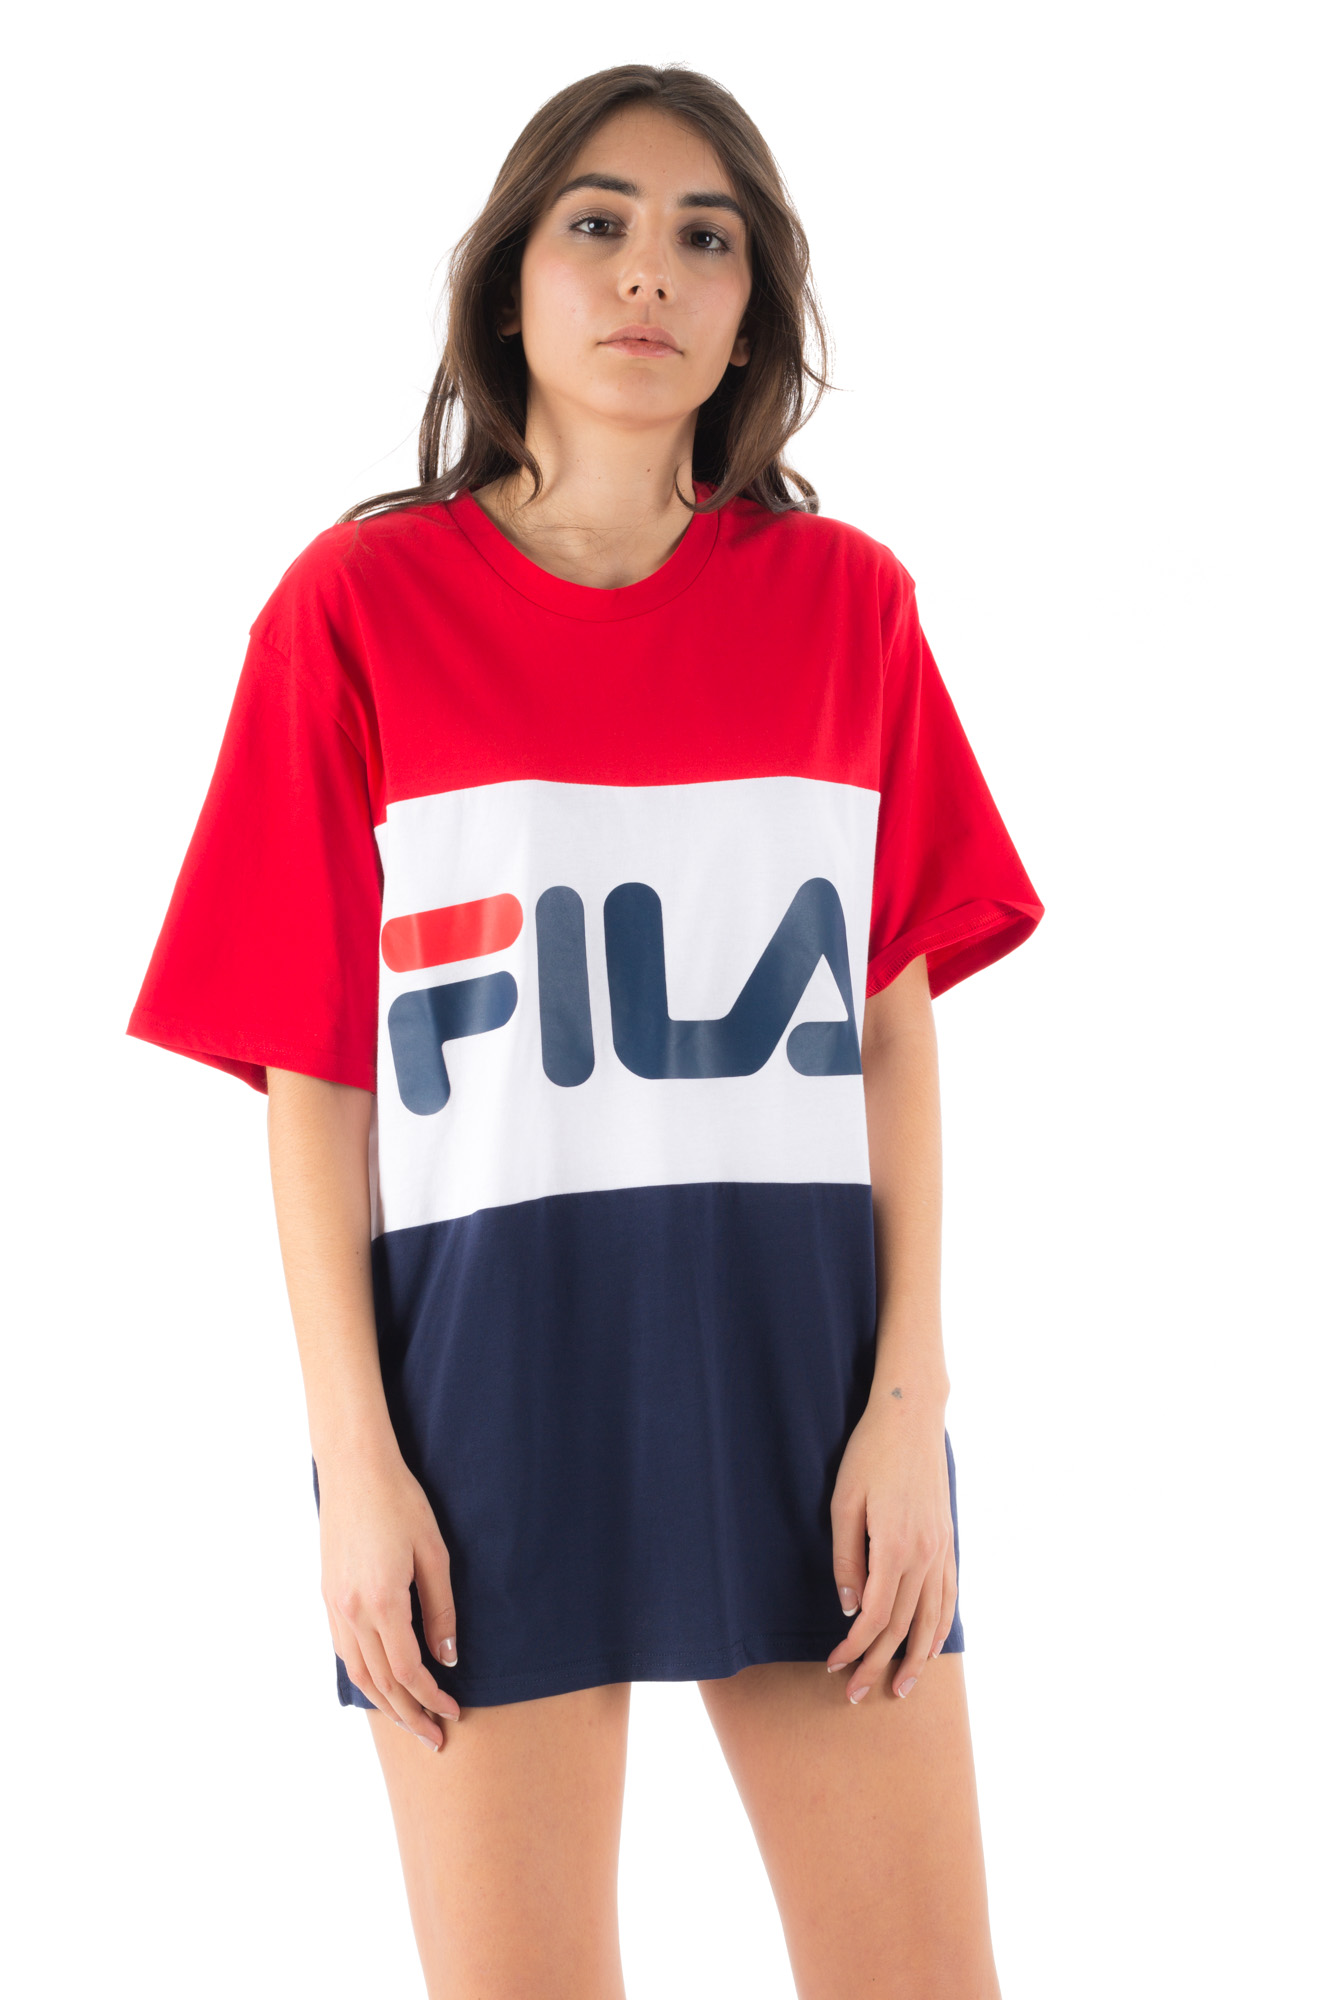 Fila T shirt Corta Baseball Calibro Shop